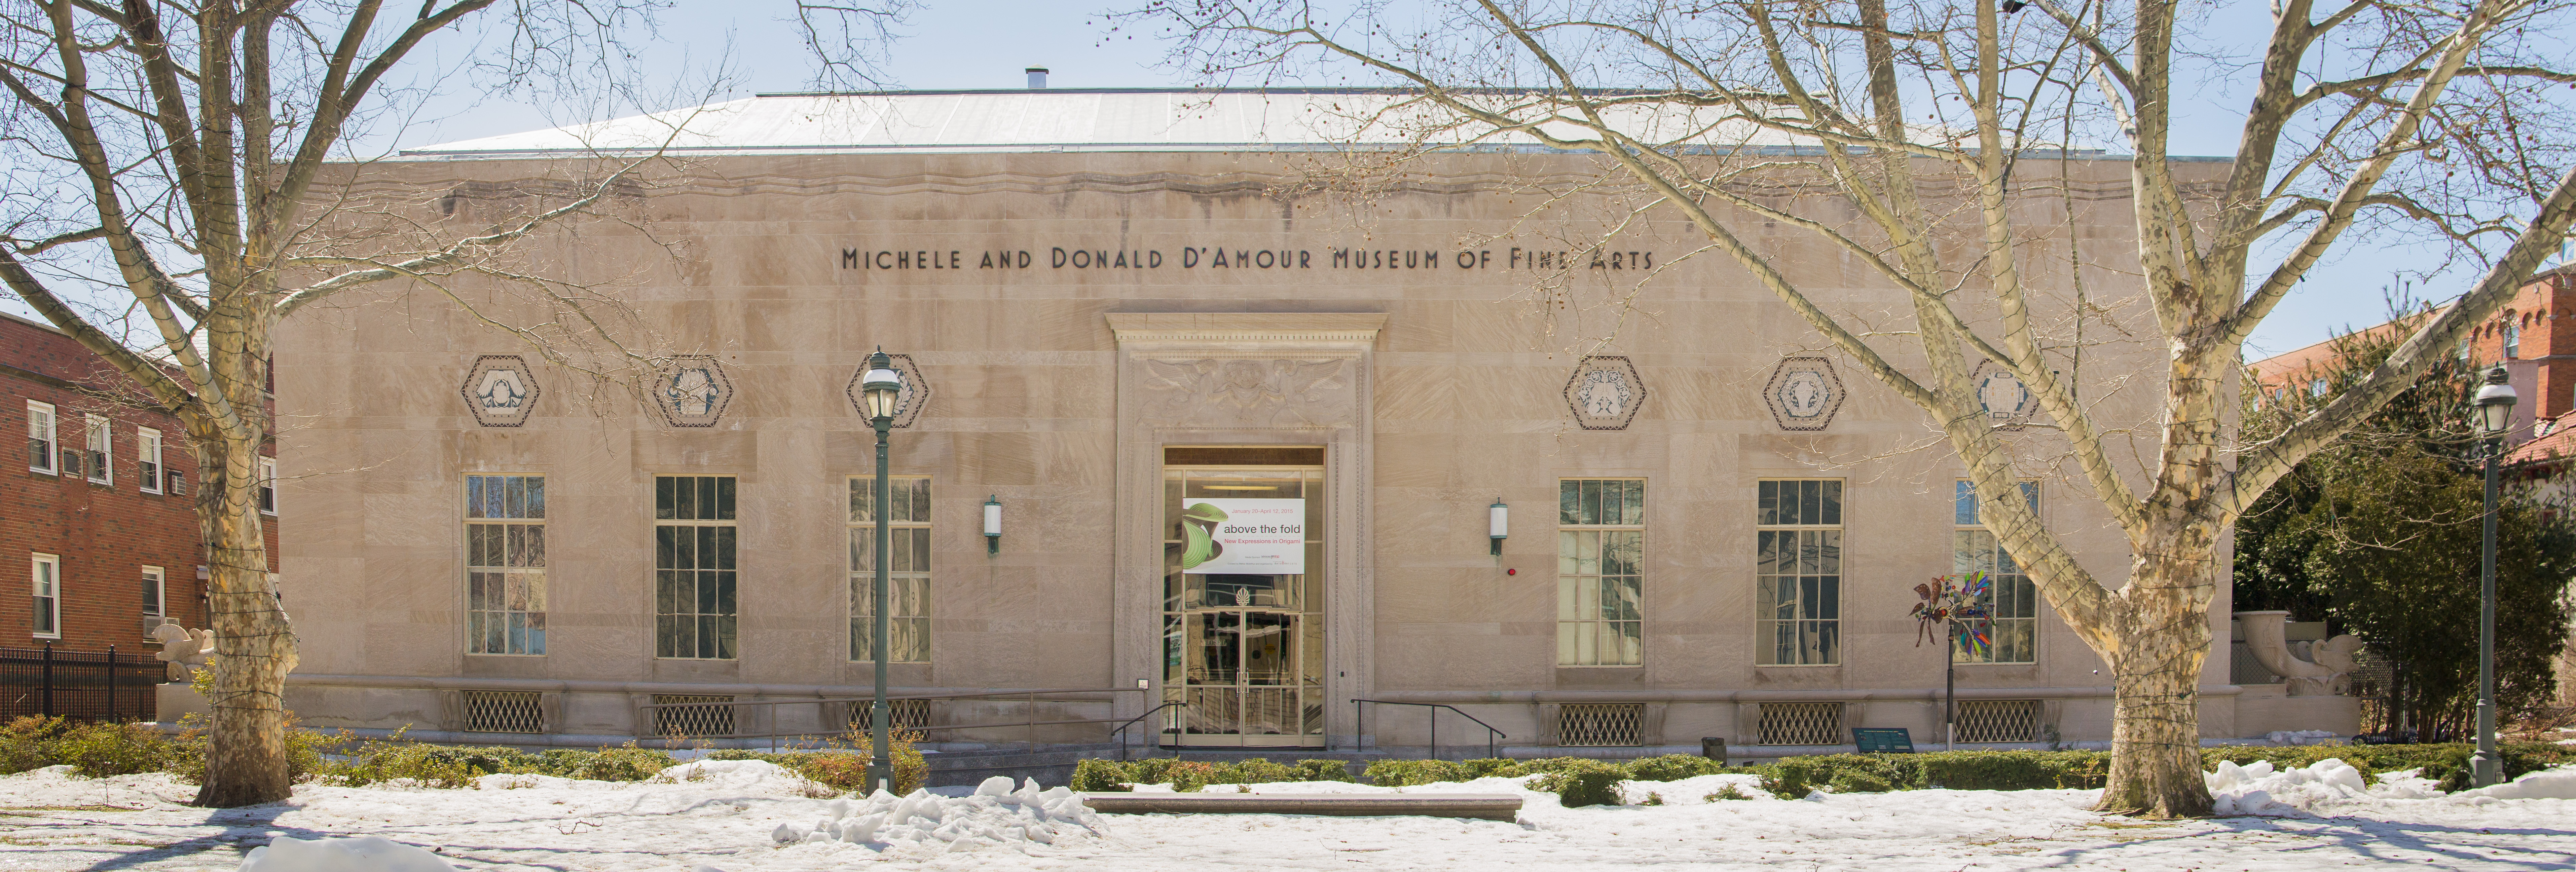 The Michele and Donald D'Amour Museum of Fine Arts